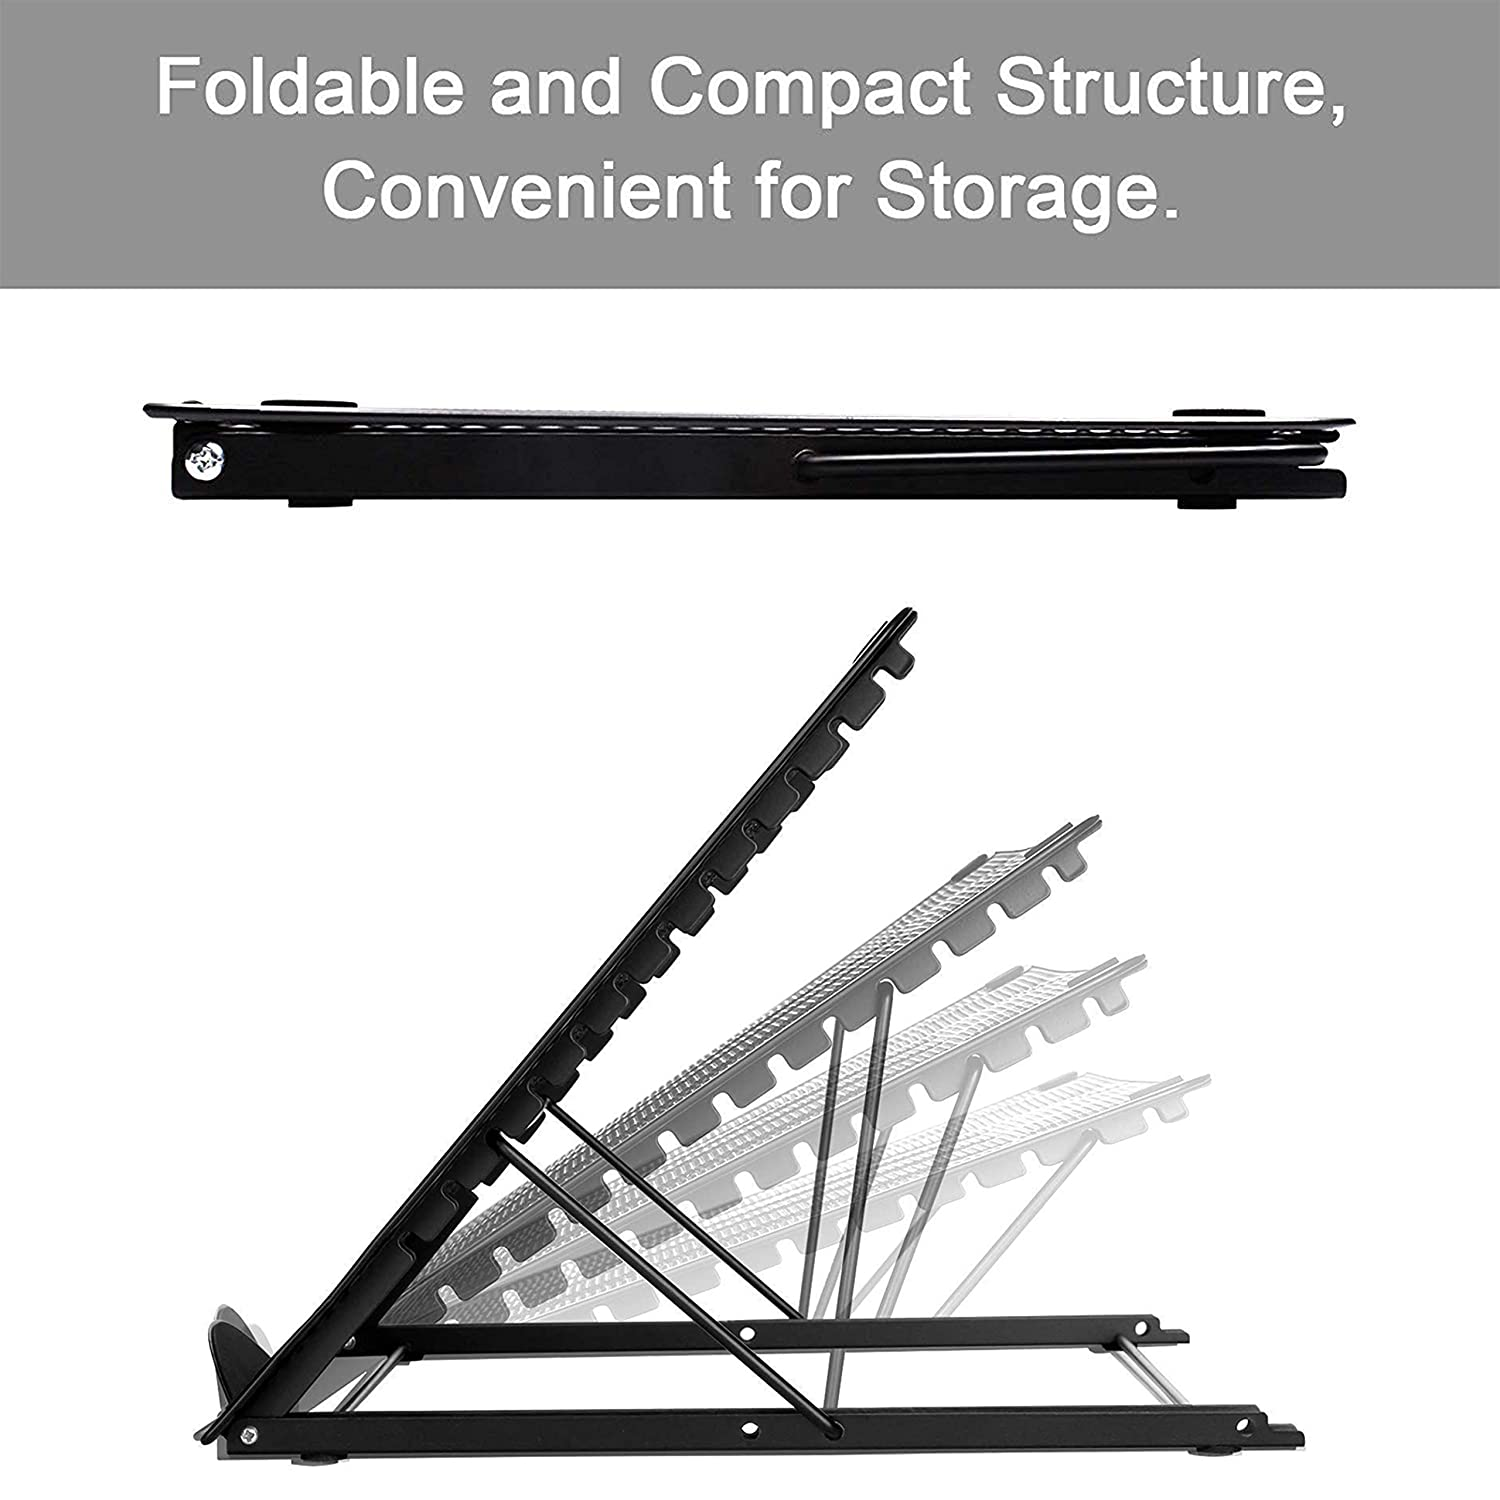 11.5 x 13.3 inch None Skidding Tracing Holder for A3 A4 LED Tracing Light Board /&Diamond 12 Angles Large Version Ventilated Adjustable Light Box Laptop Pad Stand 4pc Clips,Multifunction